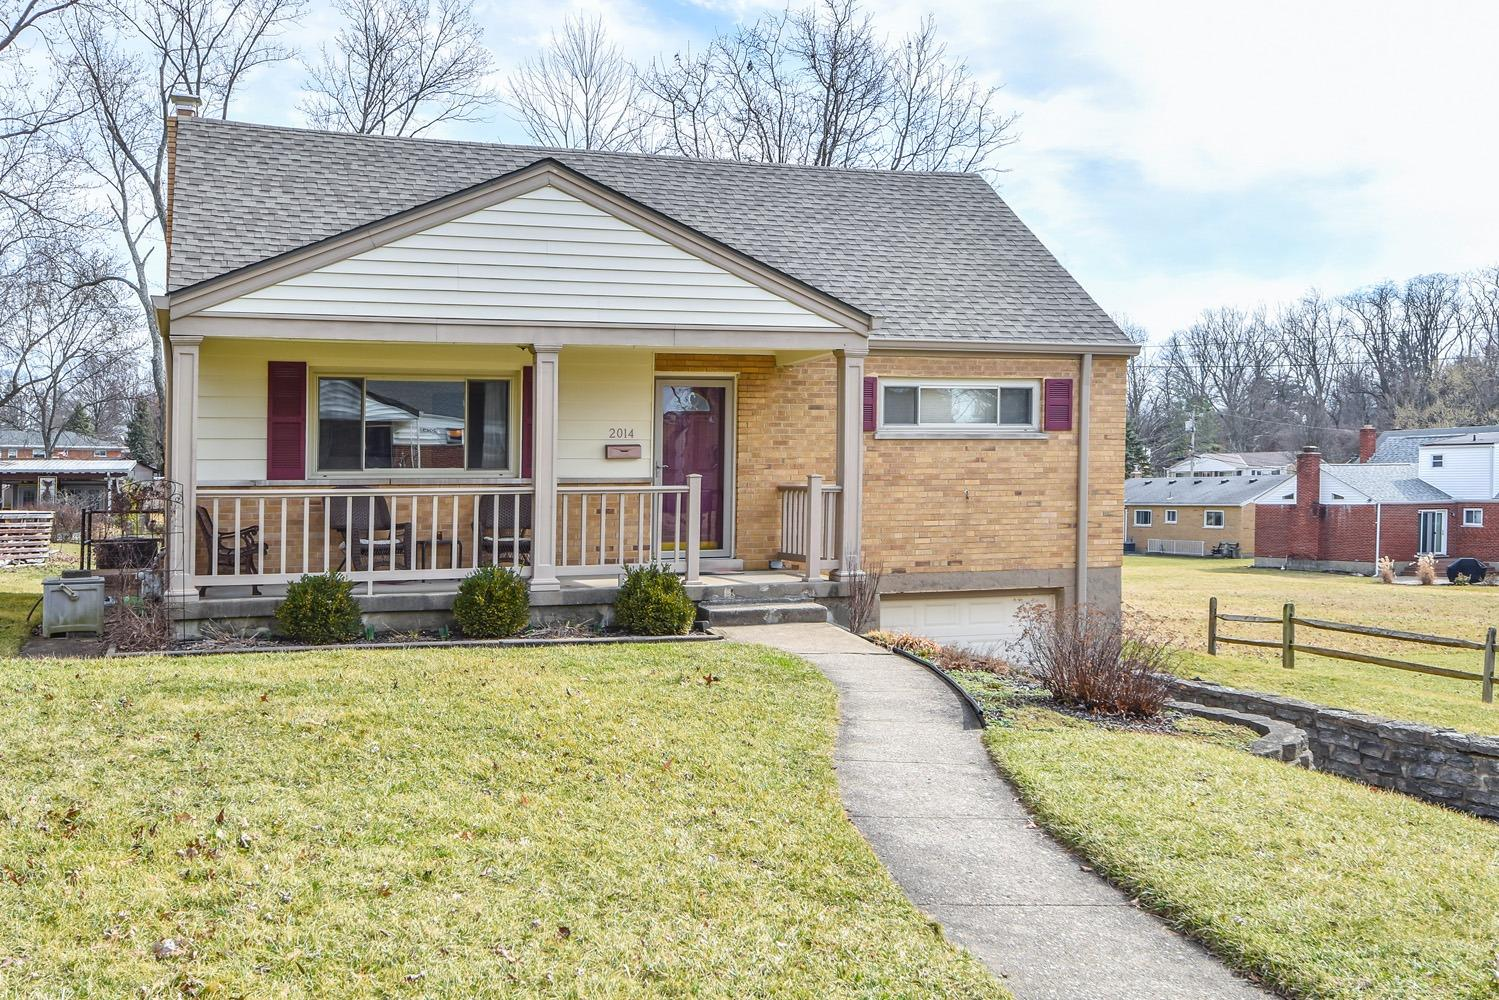 Beautiful 4 bdrm & 2 full bath cape cod w/ full dormers & a full bath on 2nd flr, feels like a true 2-story, Fin lower level w stone fp & family rm huge level yard featuring a patio /swing set / shed, lg eat-in kitchen w/ walkout, updated tile shower, quiet cul-de-sac st, tons of updates (carpet 2017 Furnace & AC 2015 hwh 2012, Roof 2010 & more.